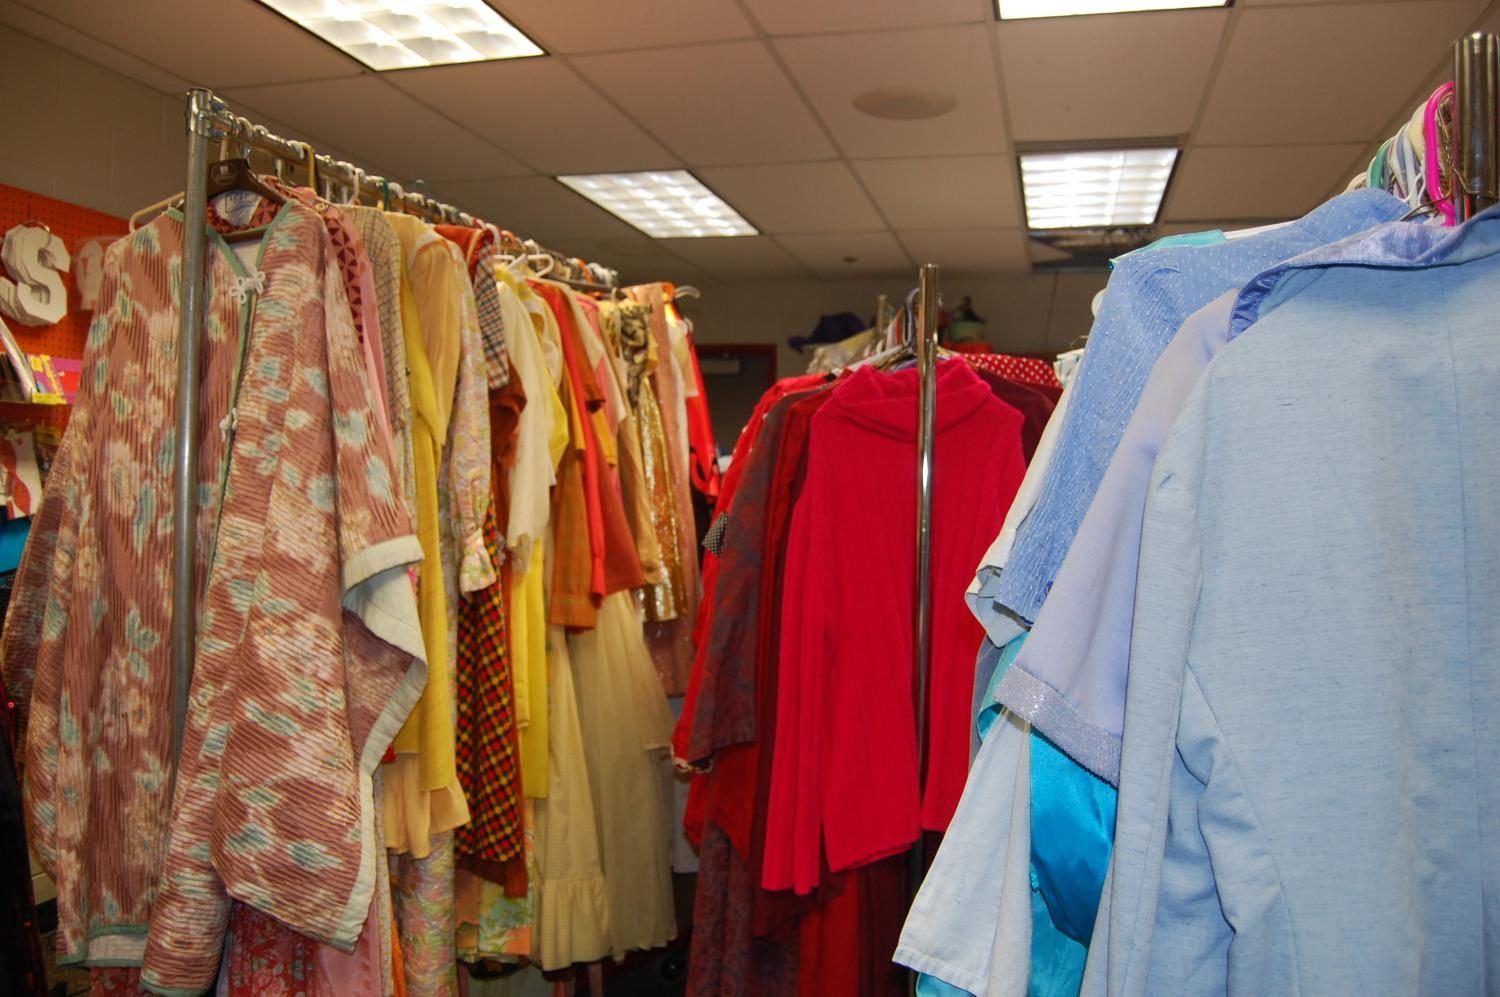 Inside Whitlock's green room, where all costumes are kept and performers change during the play.